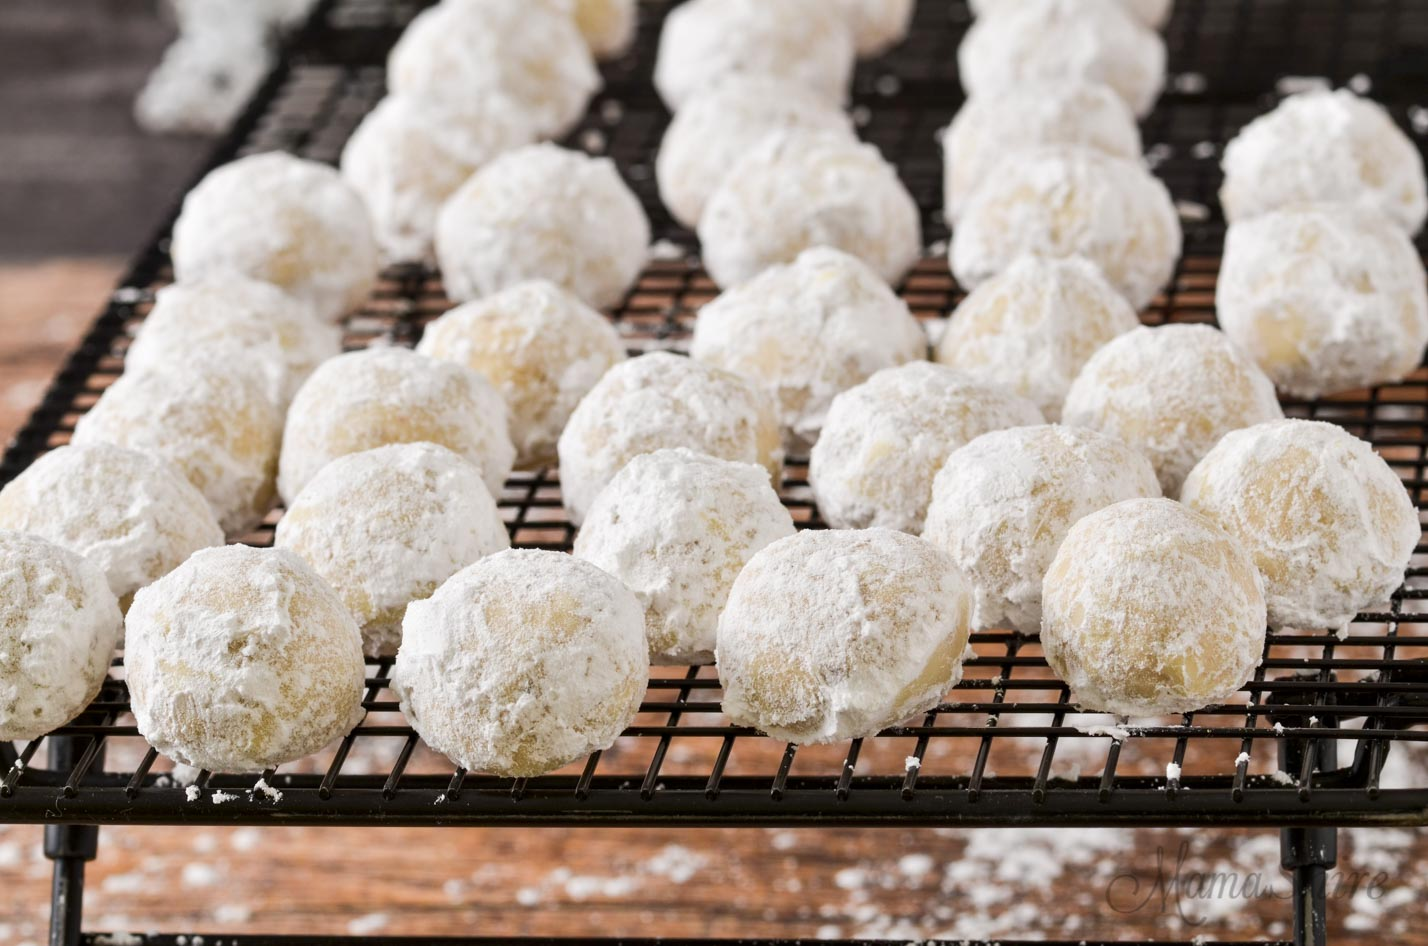 Gluten-free snowball cookies cooling on a wire rack.